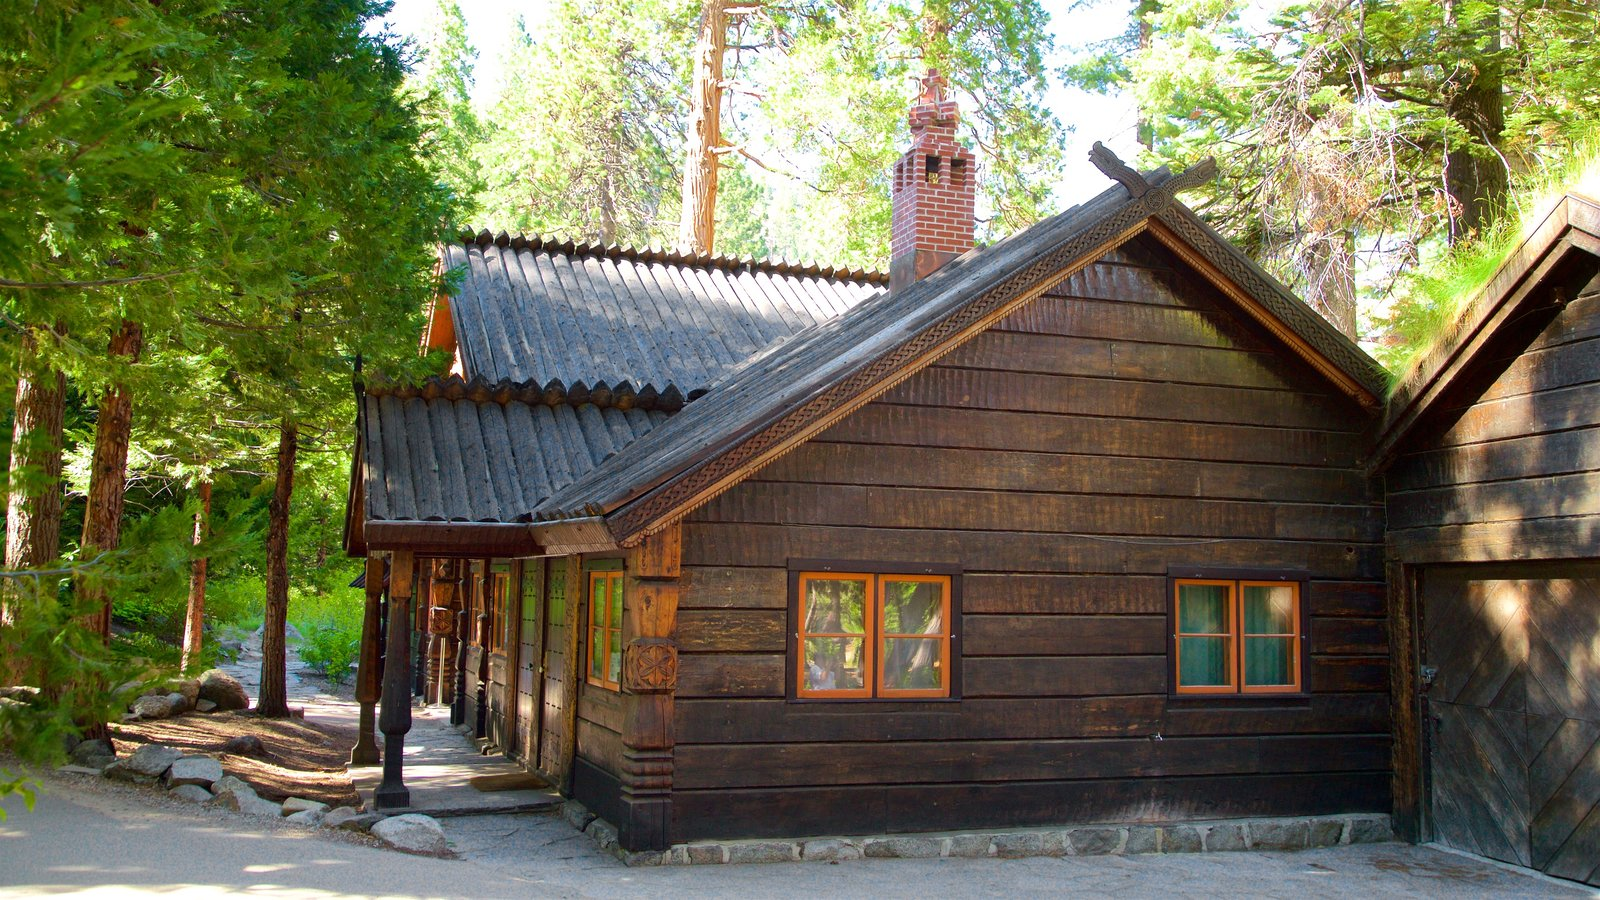 retreats lake laketahoe grandchateau california luxury south states cabins vacation rentals grand united tahoe chateau